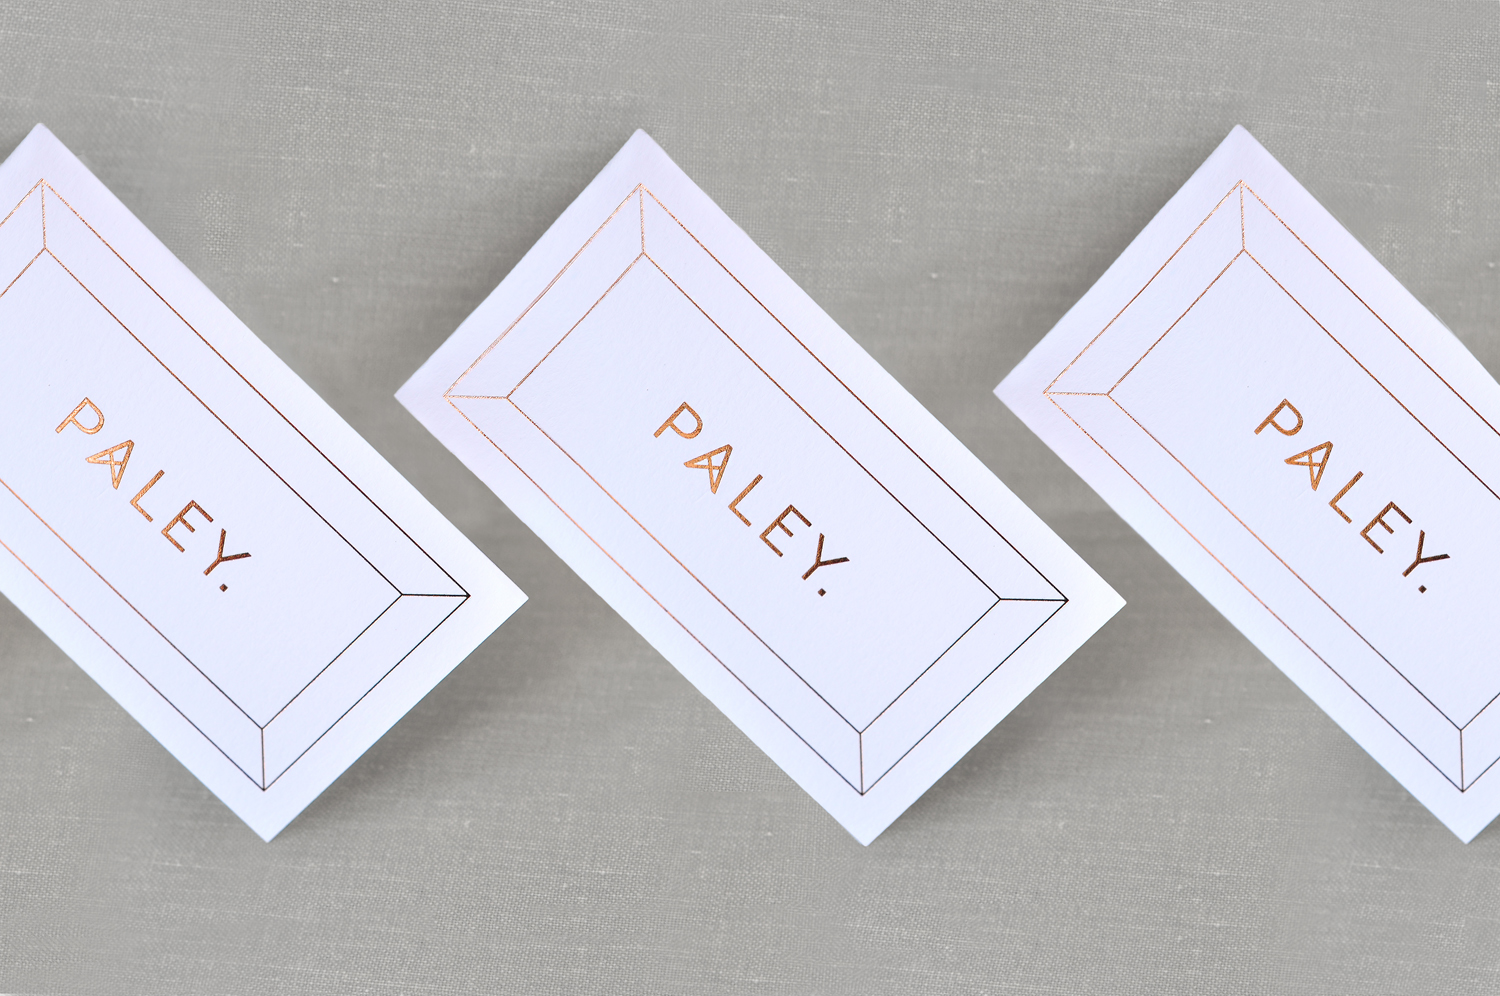 Brand identity and copper block foiled business cards for Los Angeles restaurant Paley designed by Mucca, United States